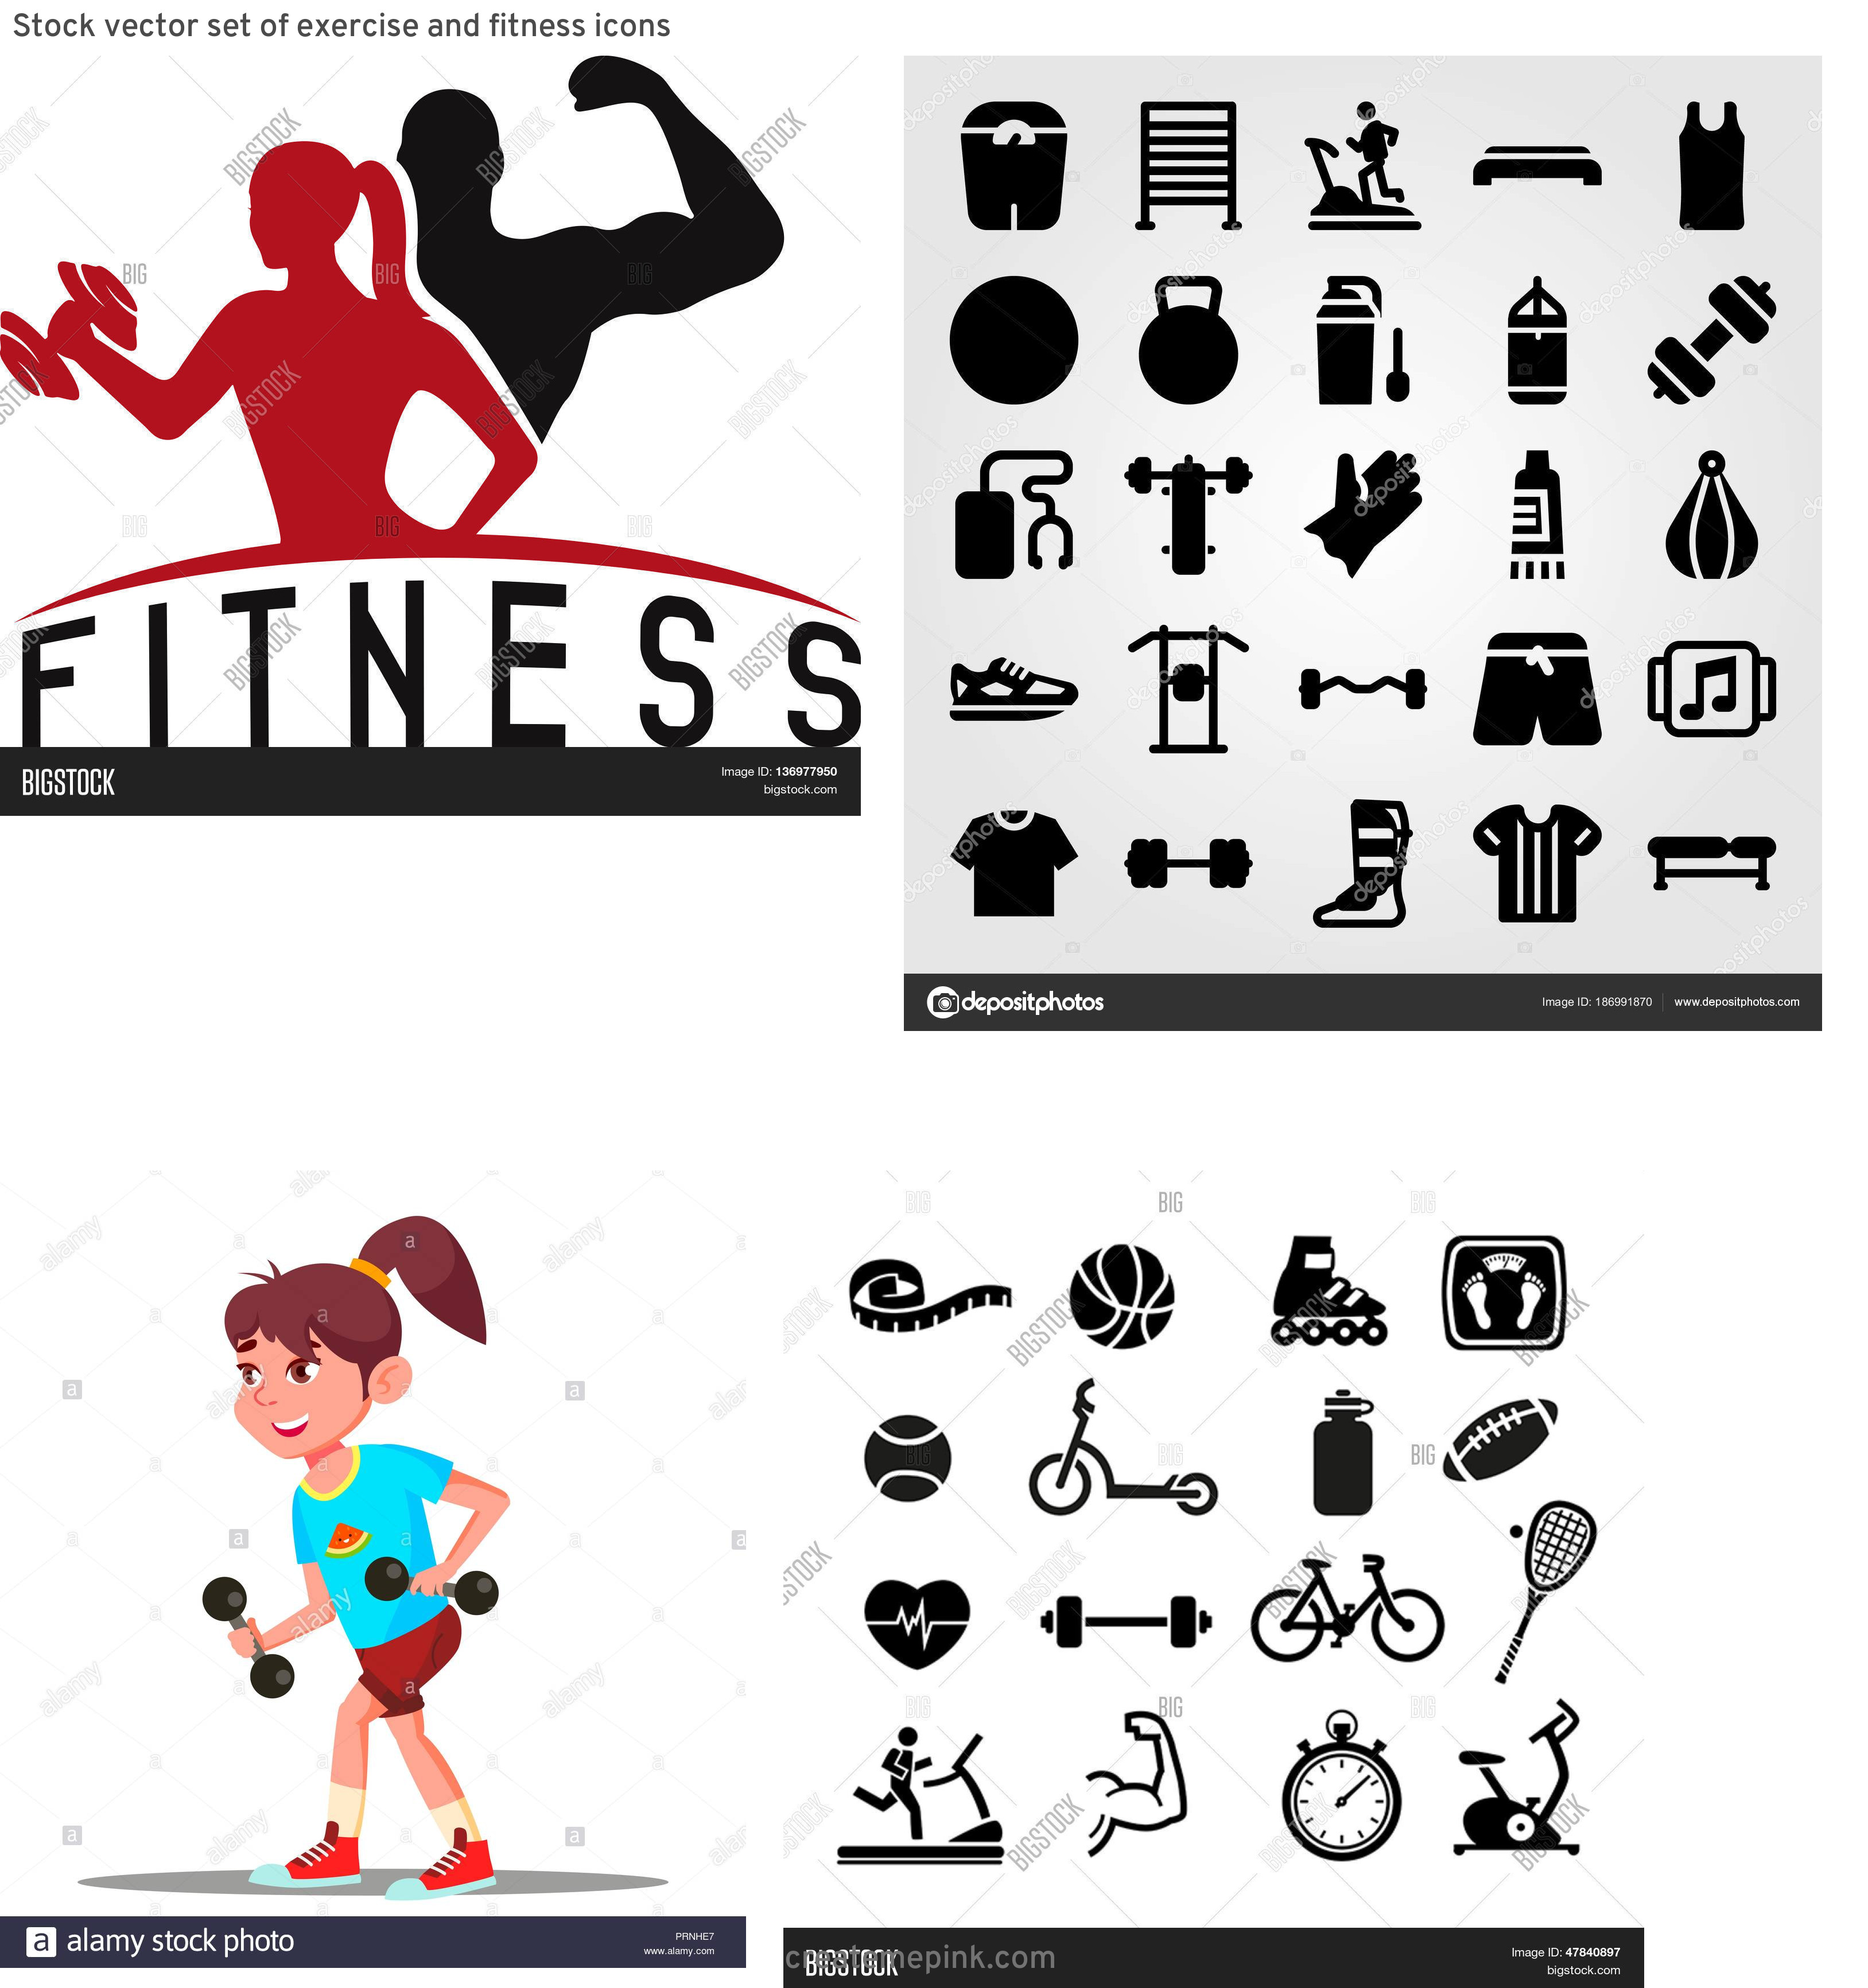 Fitness Vector Art: Stock Vector Set Of Exercise And Fitness Icons